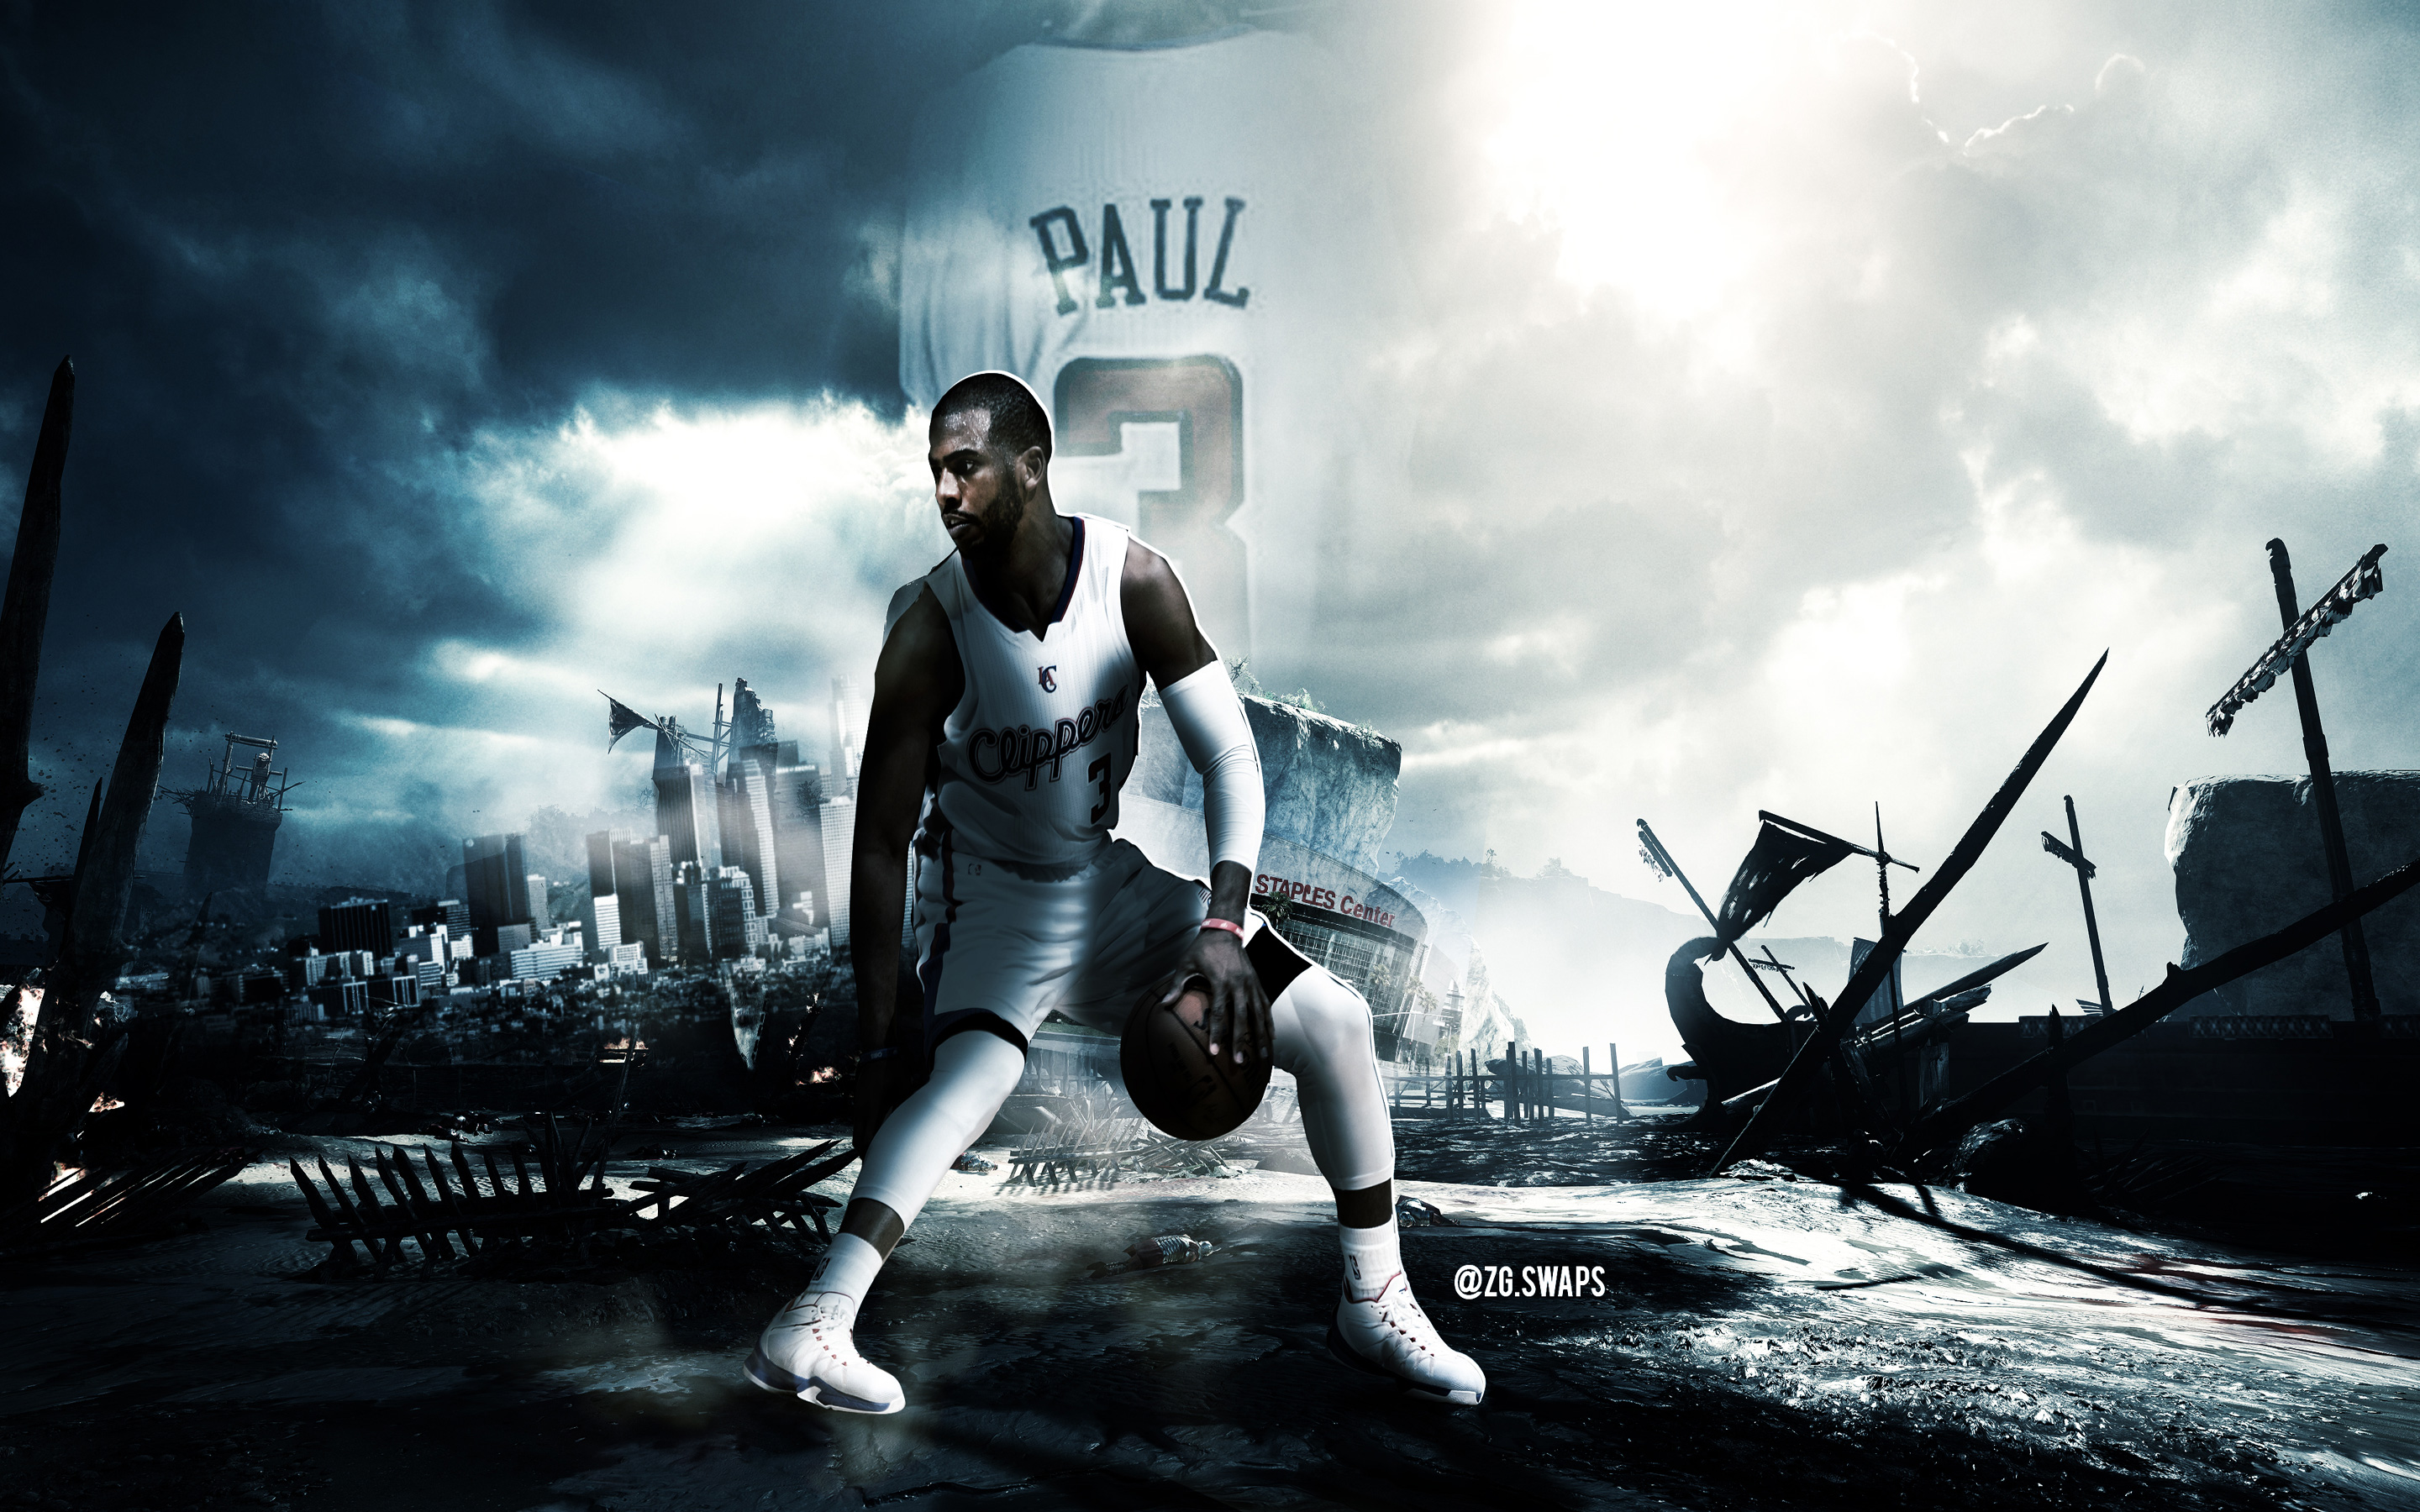 Chris Paul Clippers 2880x1800 Wallpaper